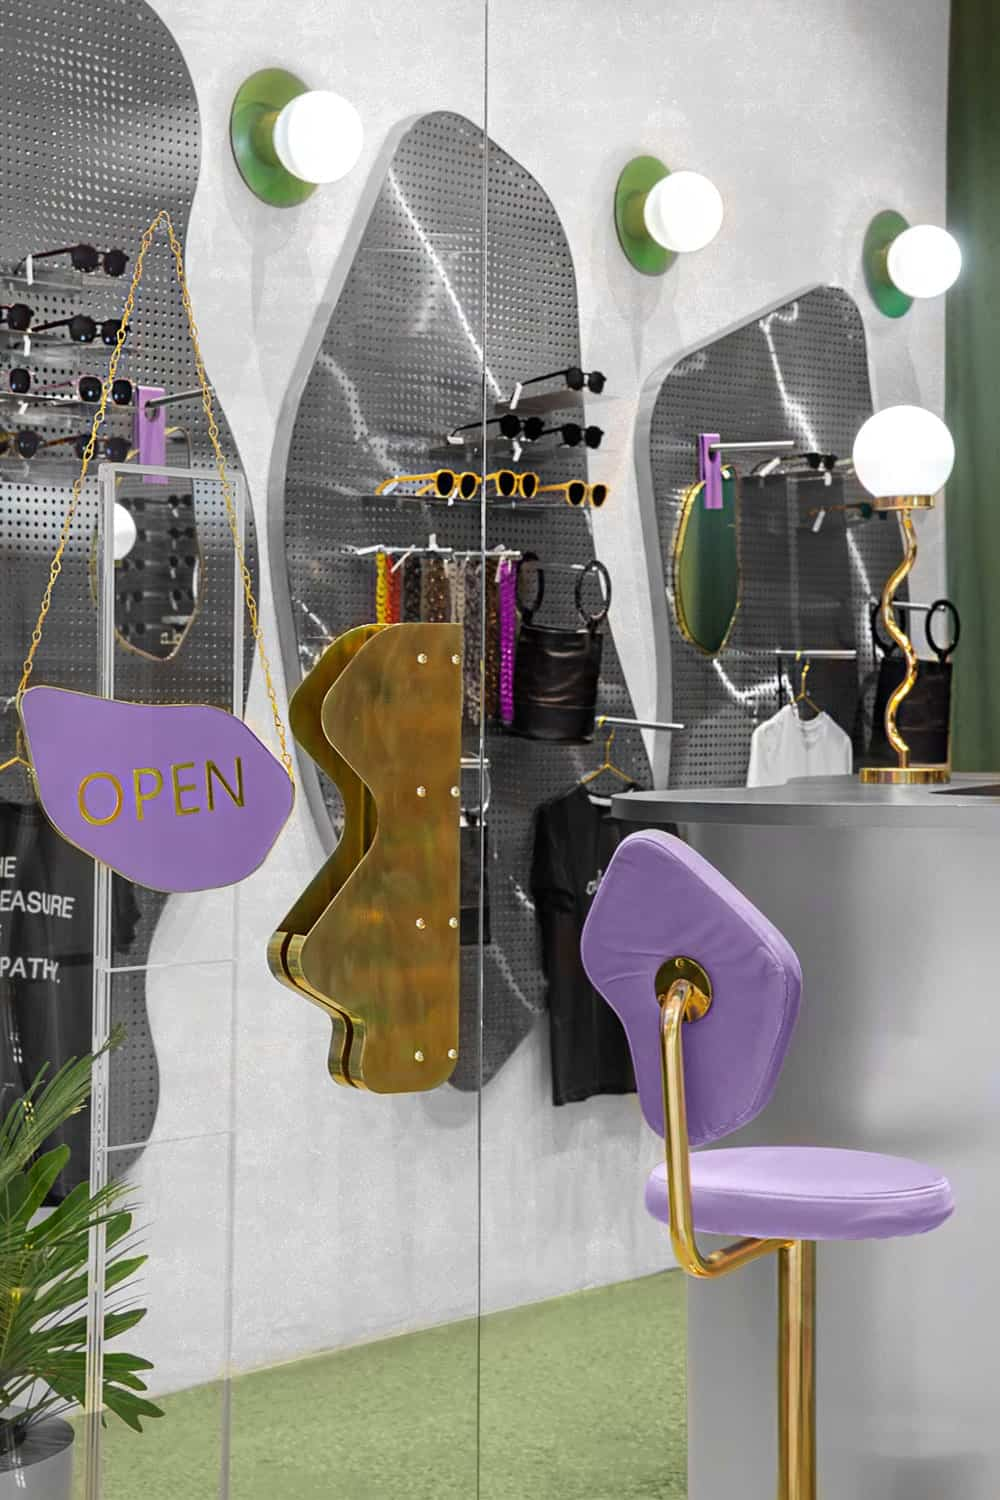 This view of the shop showcases the purple customer's chair and the glass door with a unique handle and sign.